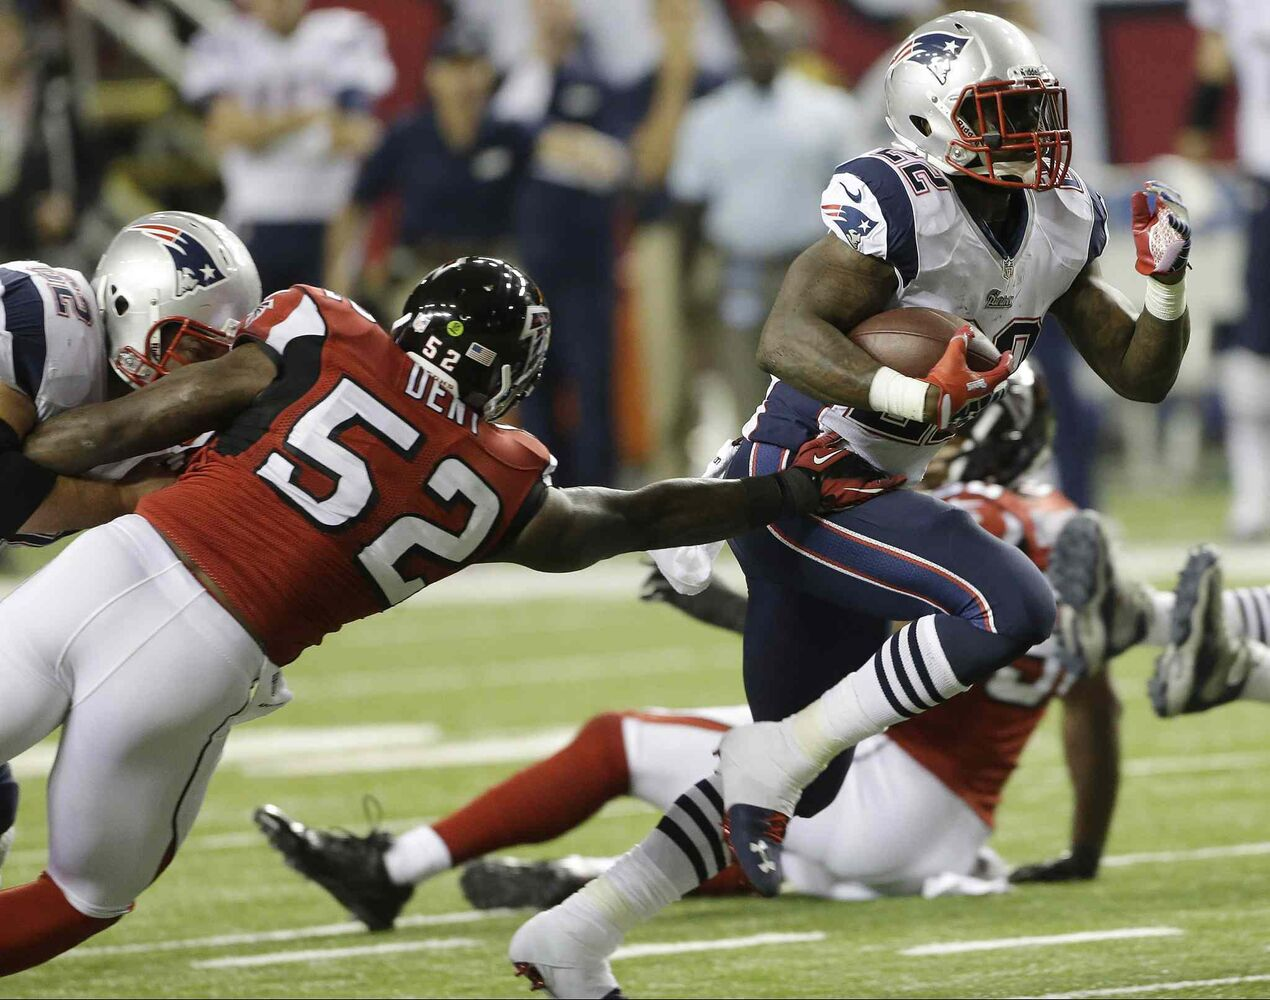 New England Patriots running back Stevan Ridley rushes past Atlanta Falcons linebacker Akeem Dent during the first half their game, Sunday, in Atlanta.  (John Bazemore / The Associated Press)